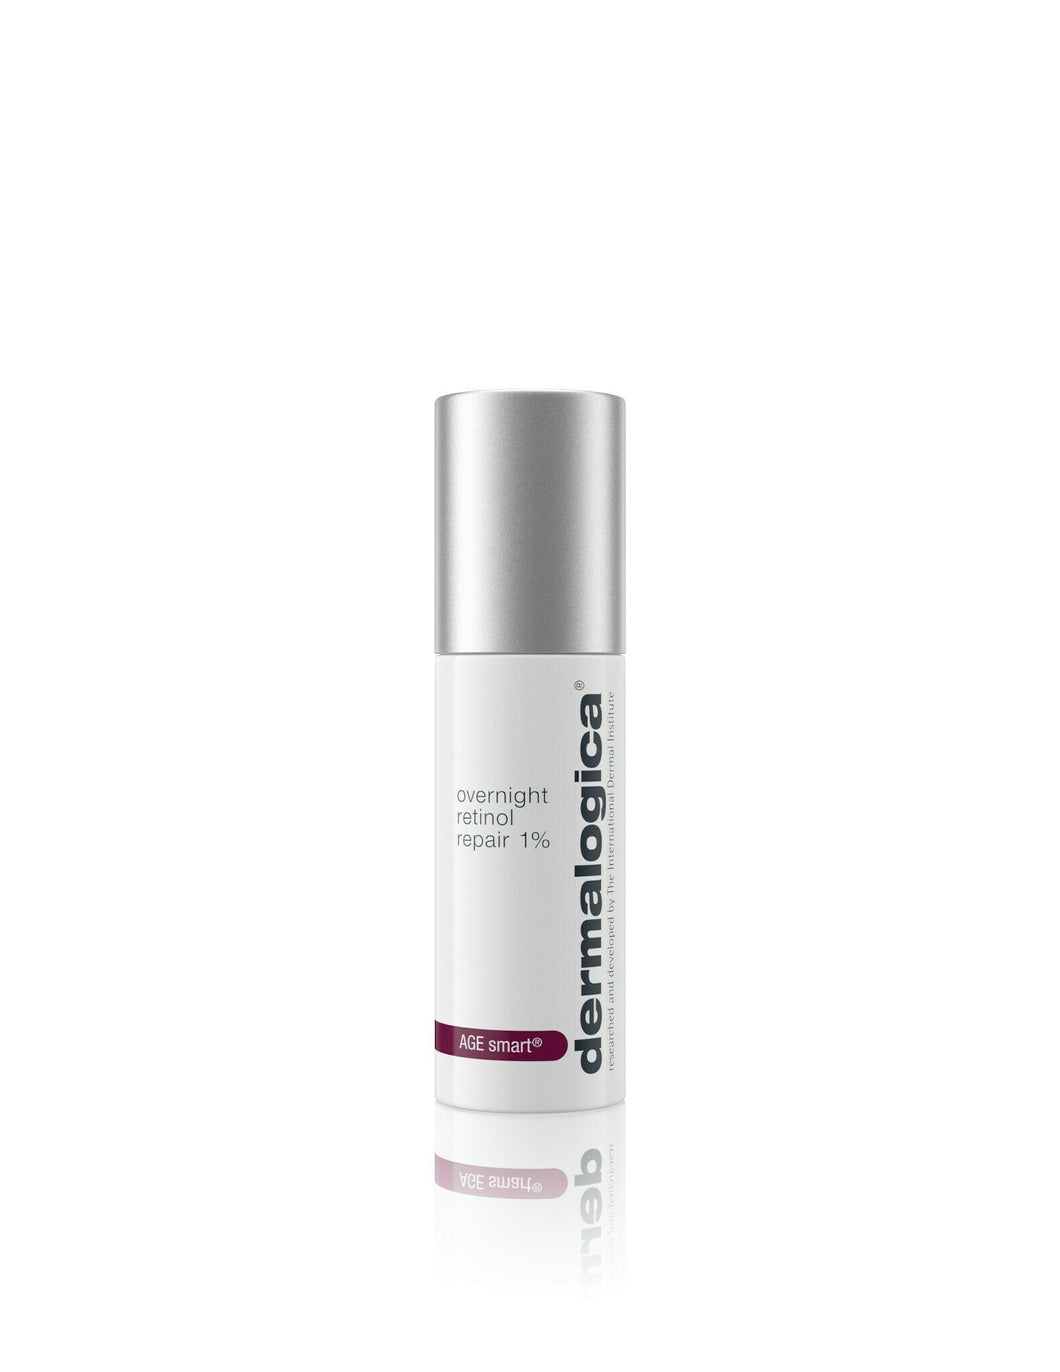 Dermalogica Overnight Retinol Repair 1% 25ml - Dermalogica® MX